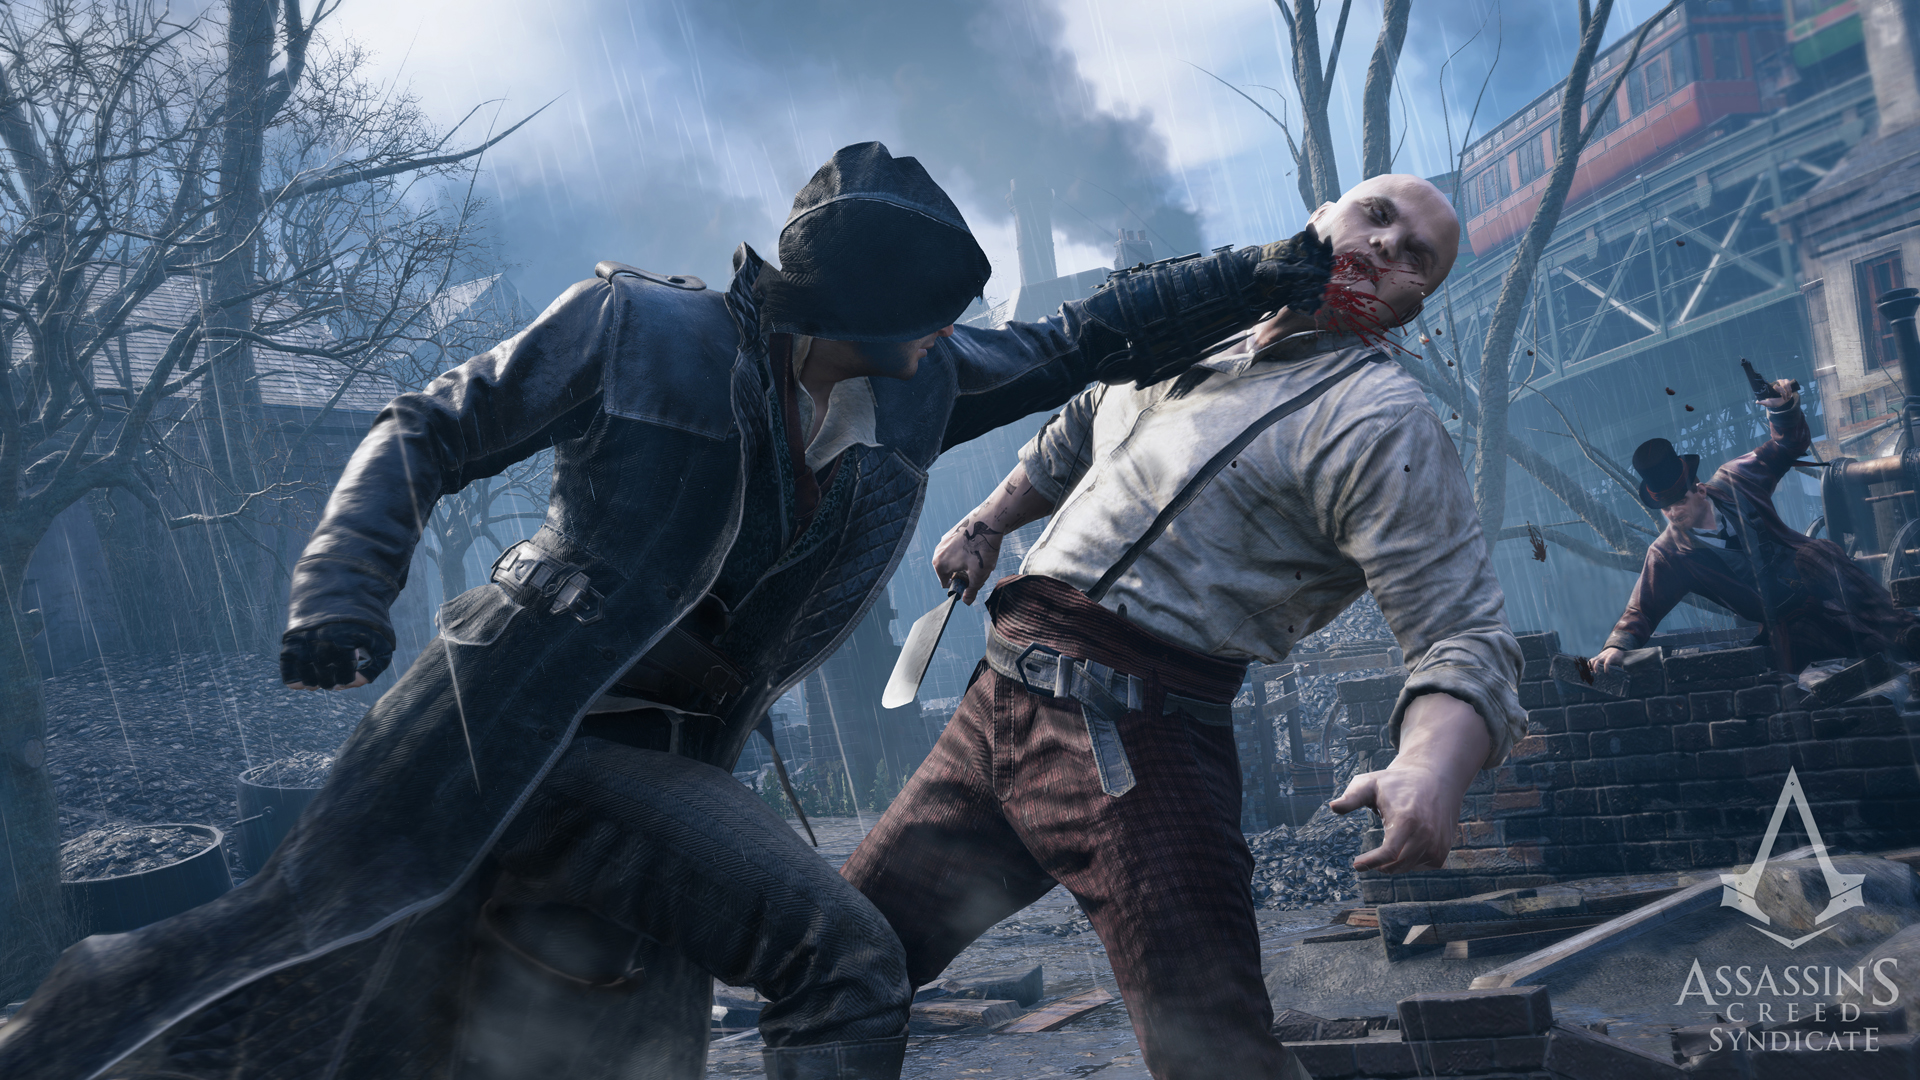 """Assassin's Creed: Syndicate"" Officially Revealed - Releasing In October for Consoles First"